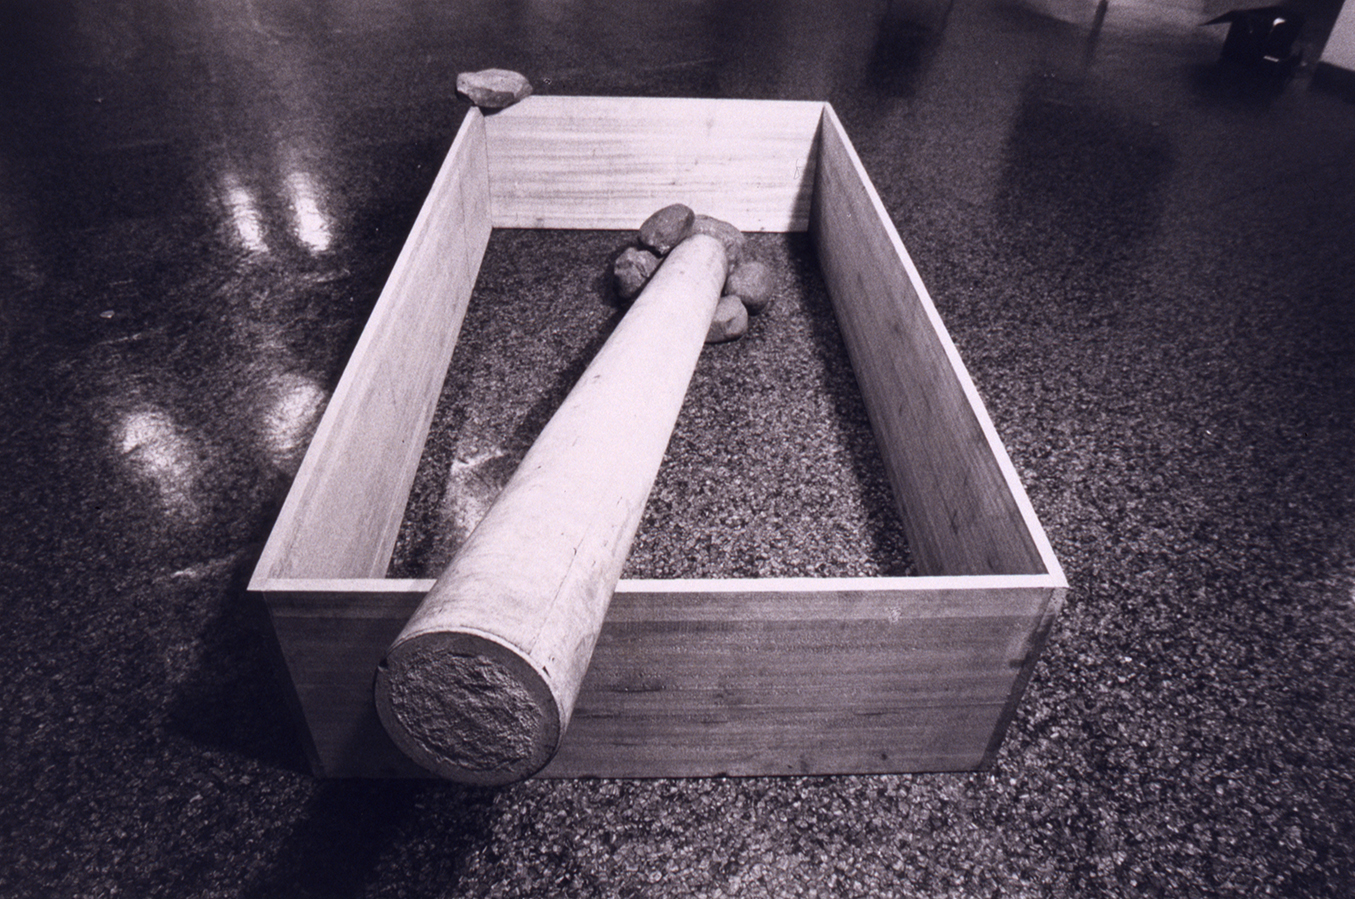 Limited Condition , 1970 限界状況 ( Genkai Jōkyō ) Wood, stone, cement 200 x 100 x 47 centimeters  The 5th Japan Art Festival,  The National Museum of Modern Art, Tokyo, 1970 Photo: Shigeo Anzaï